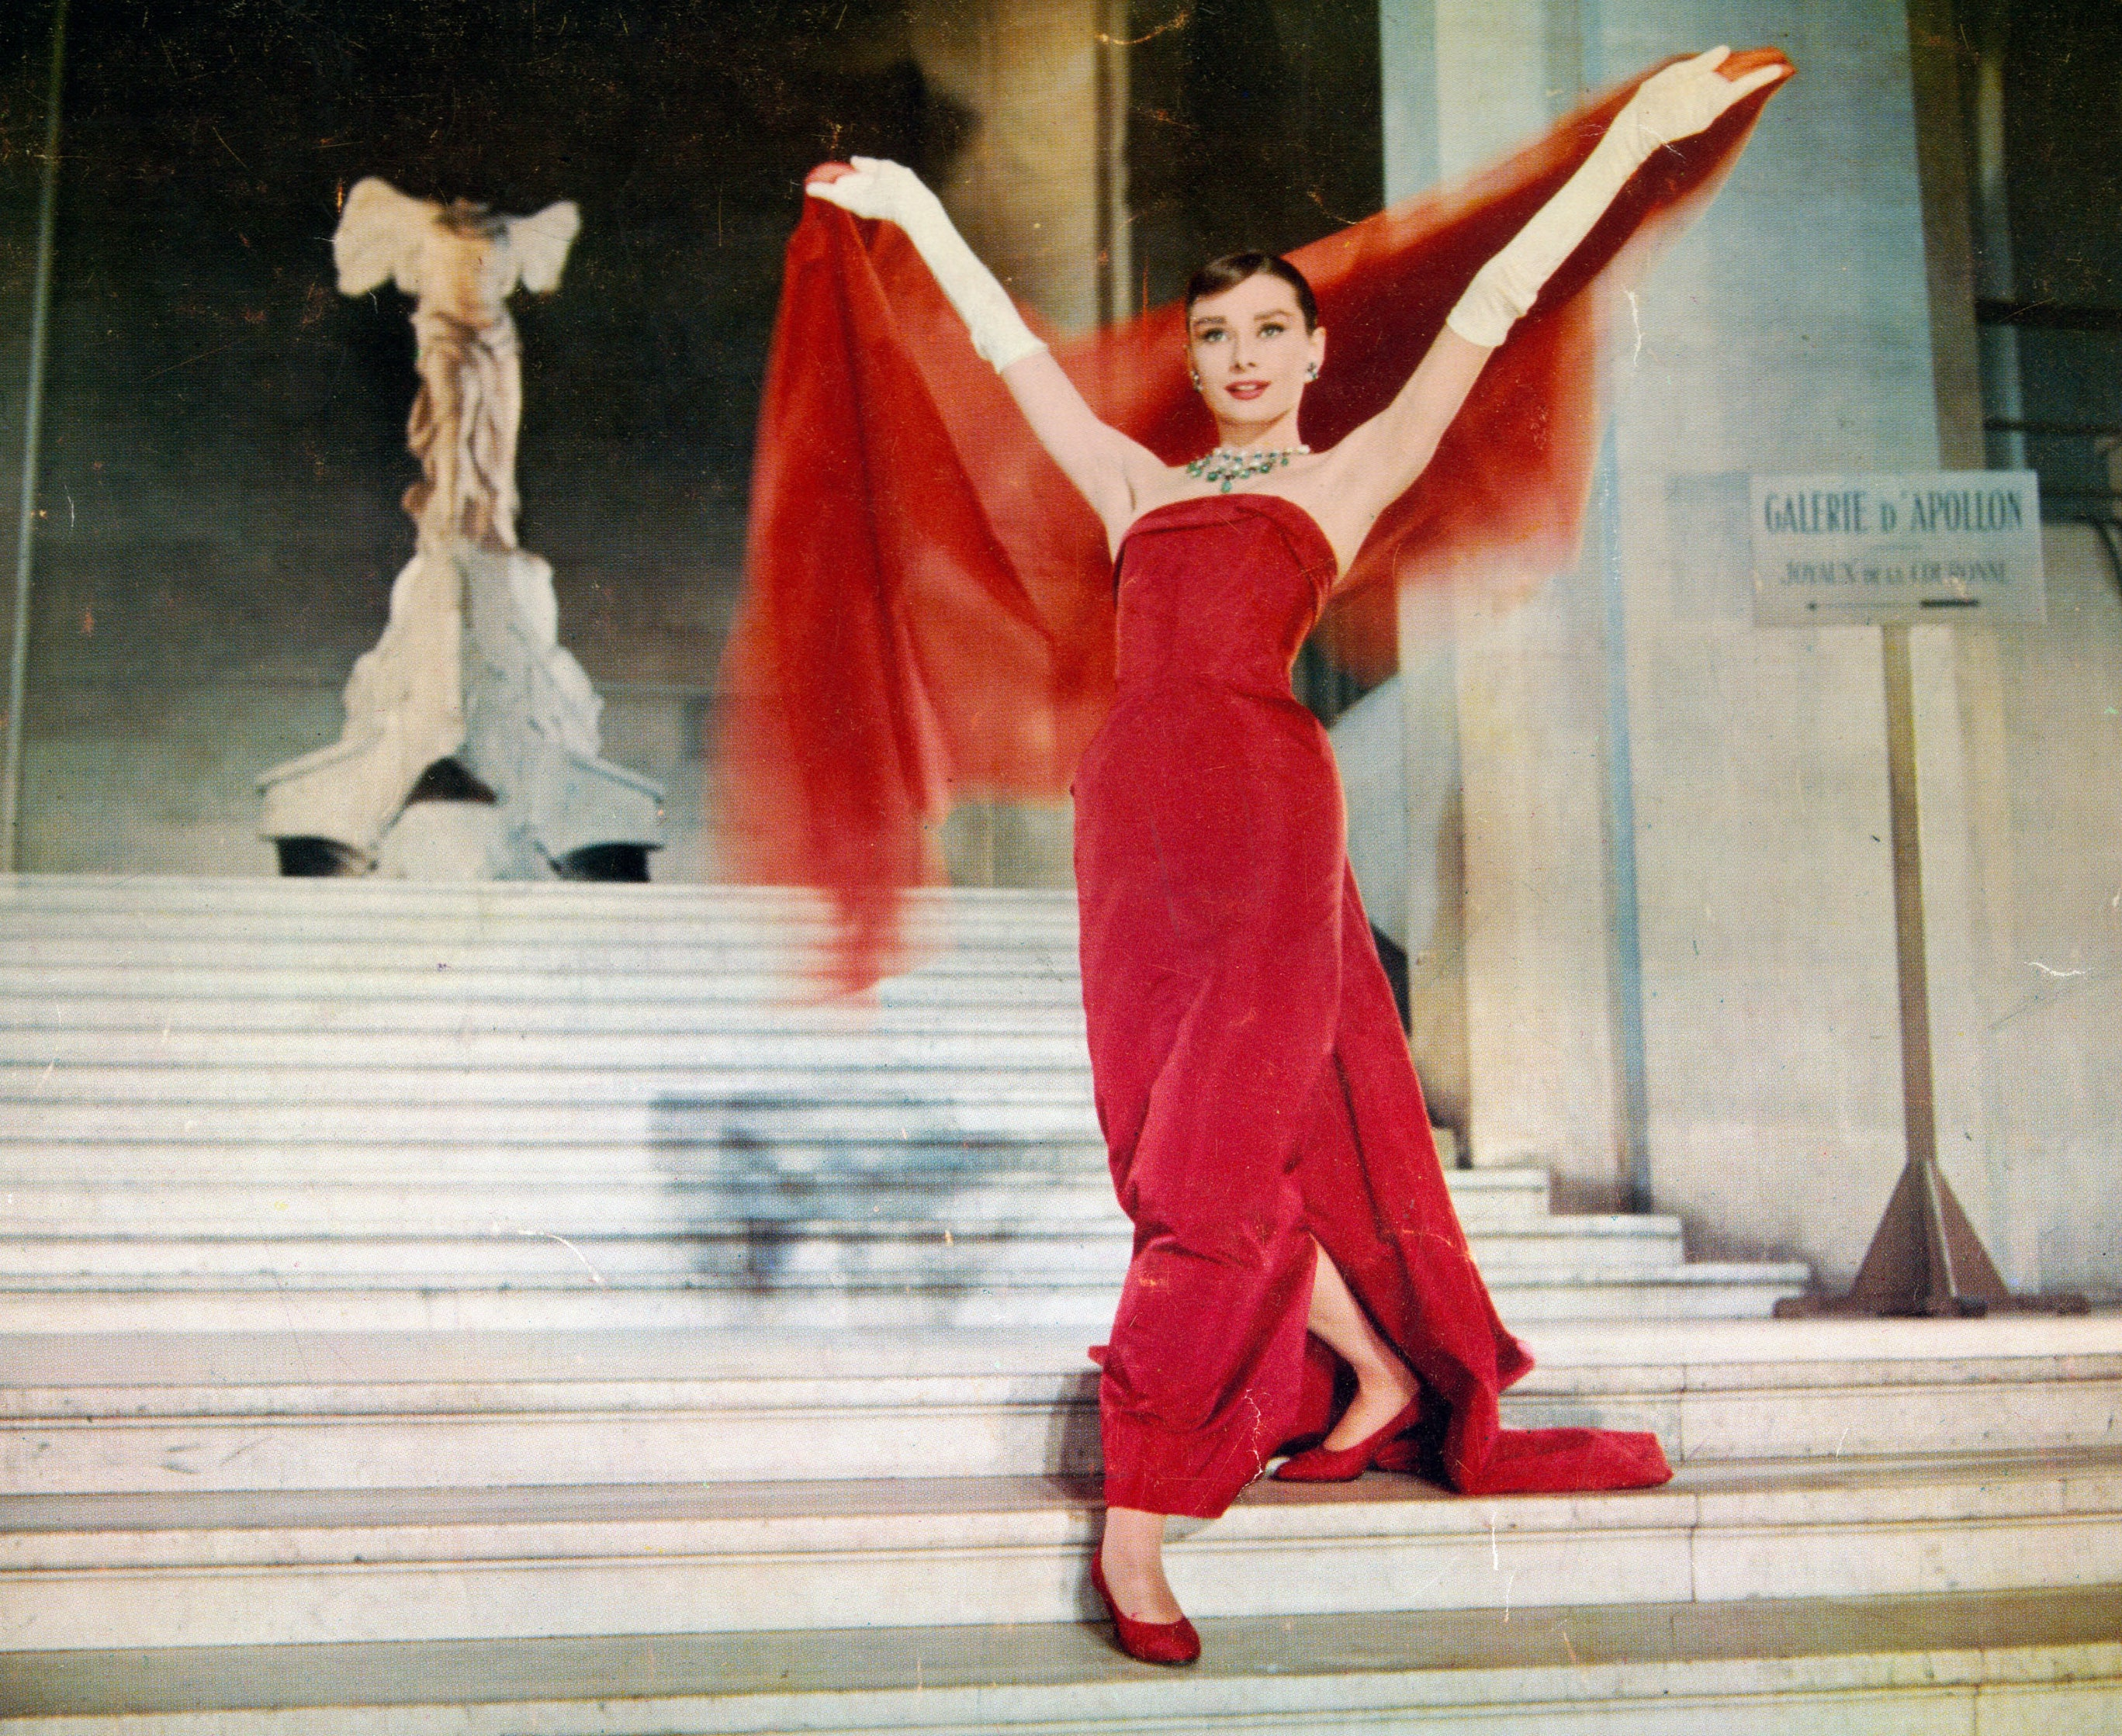 Audrey Hepburn - Funny Face, Red Dress